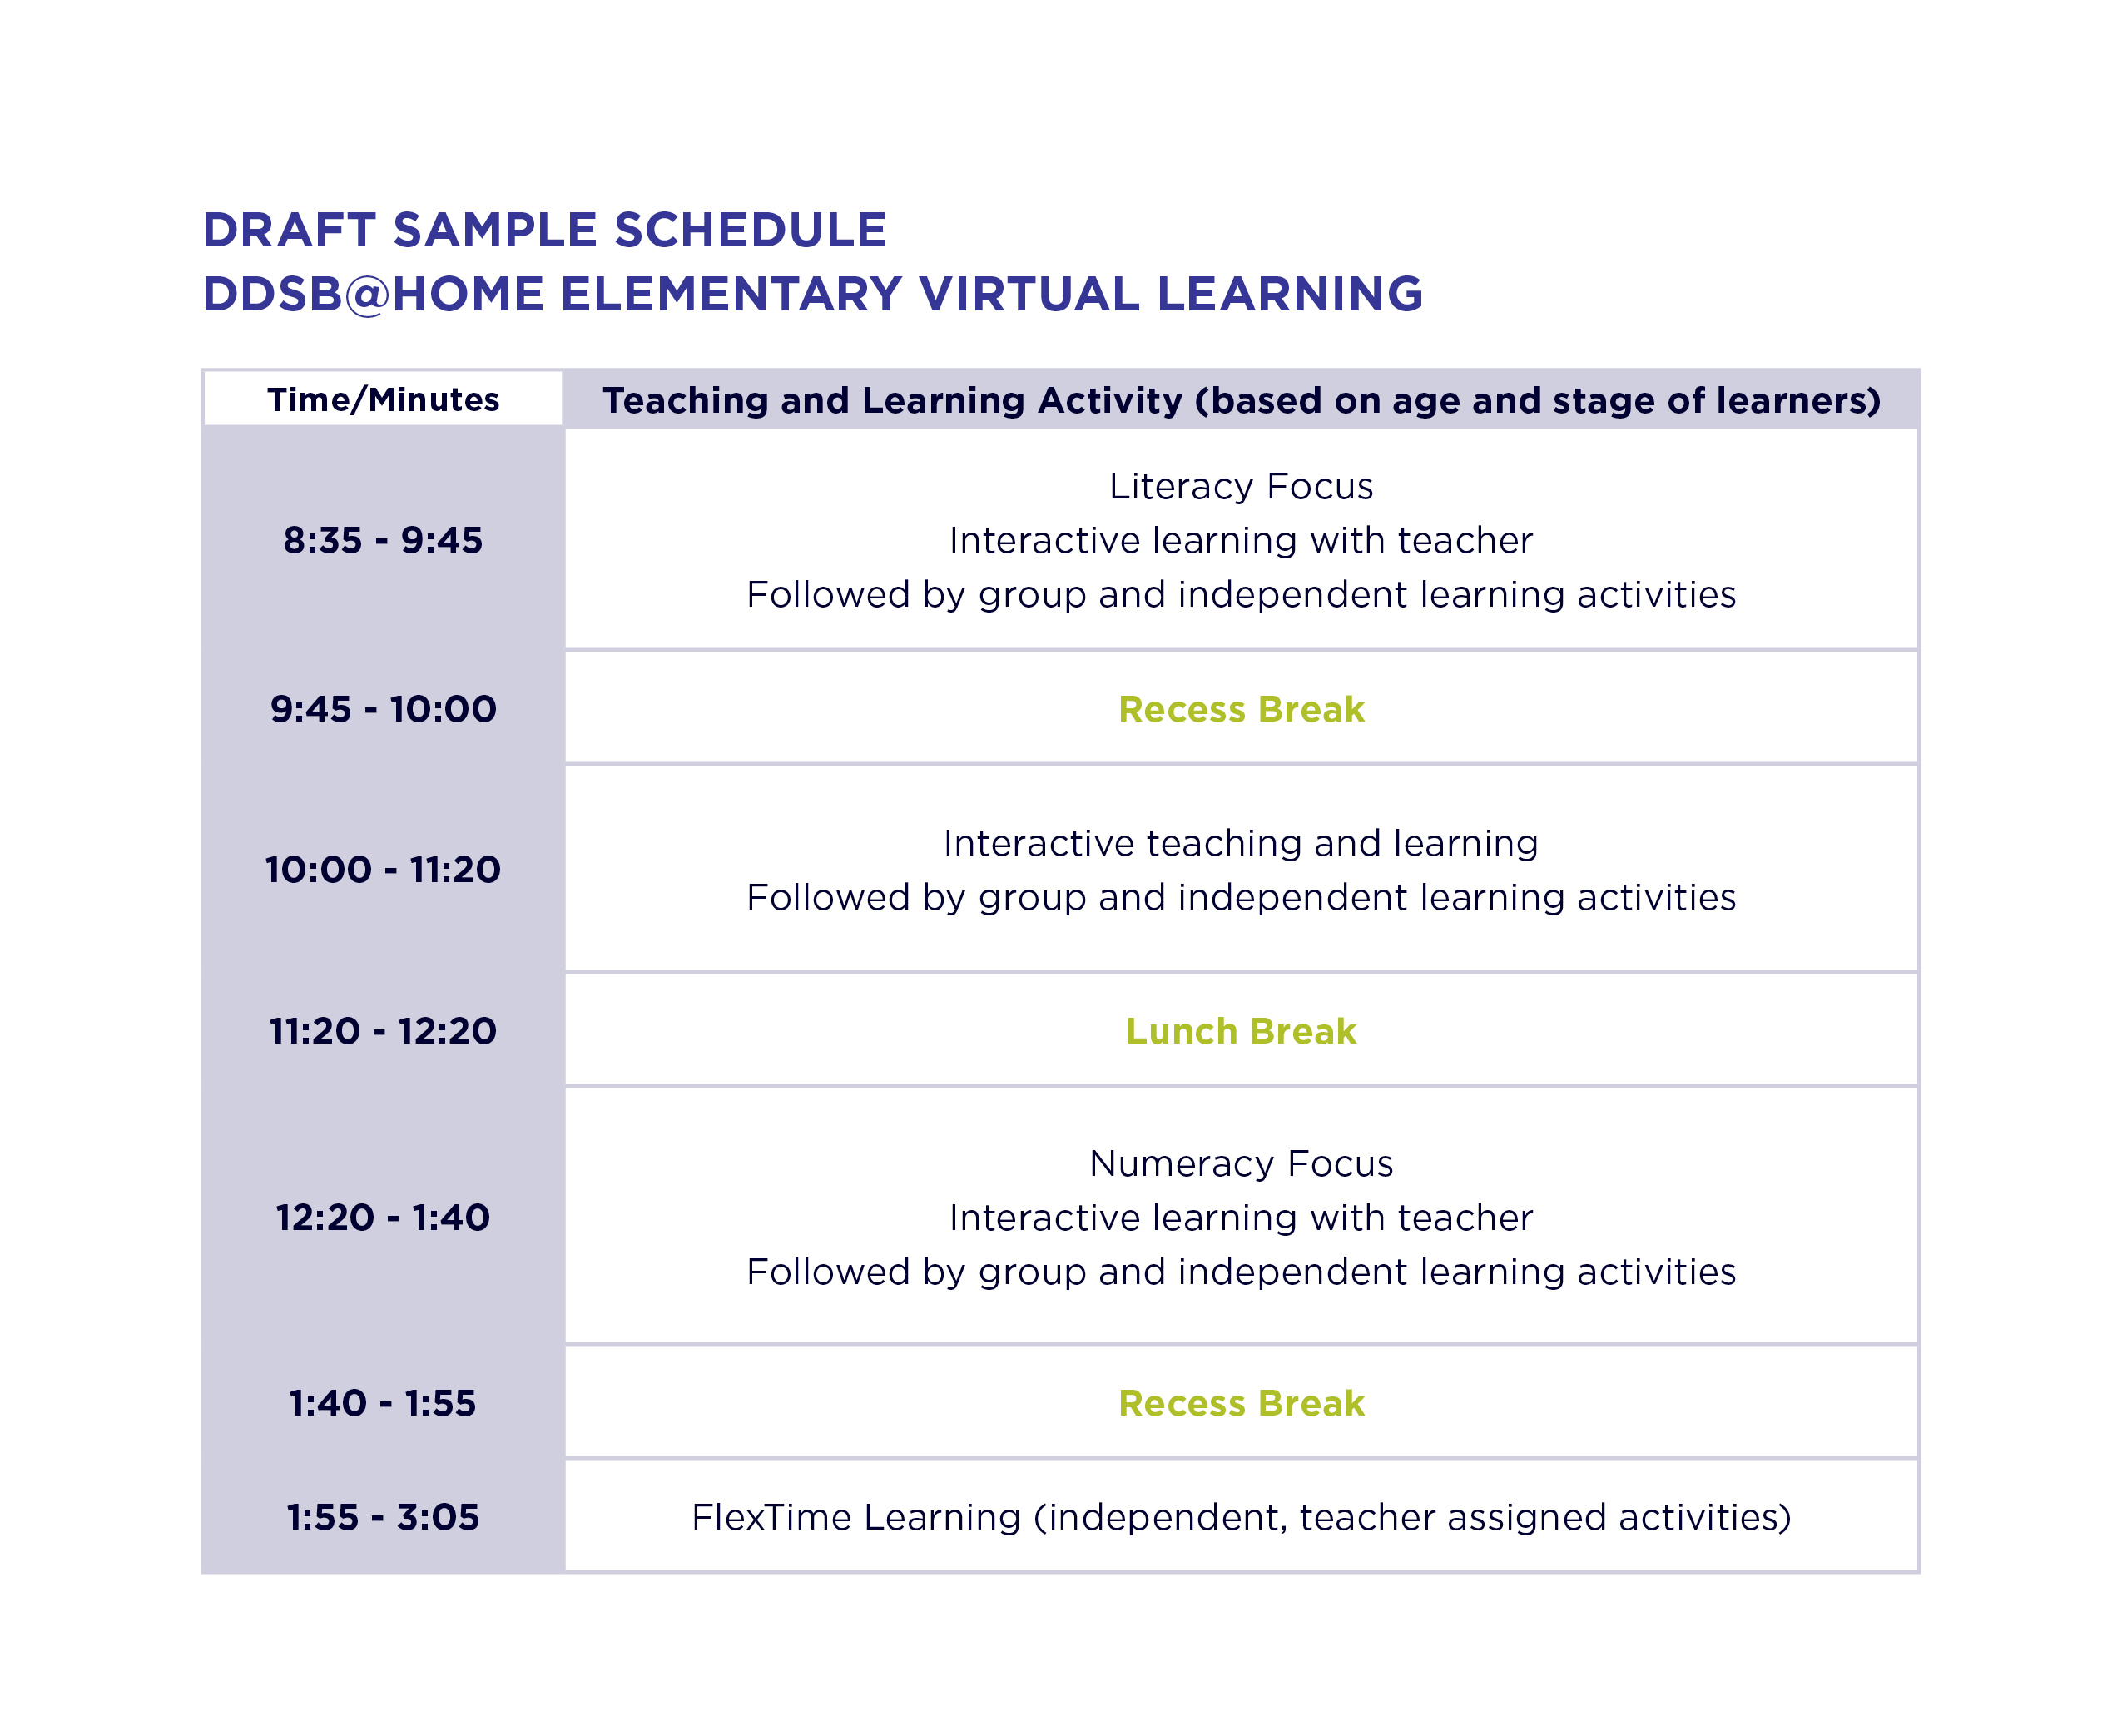 Draft Sample Schedule for Elementary Remote Learning